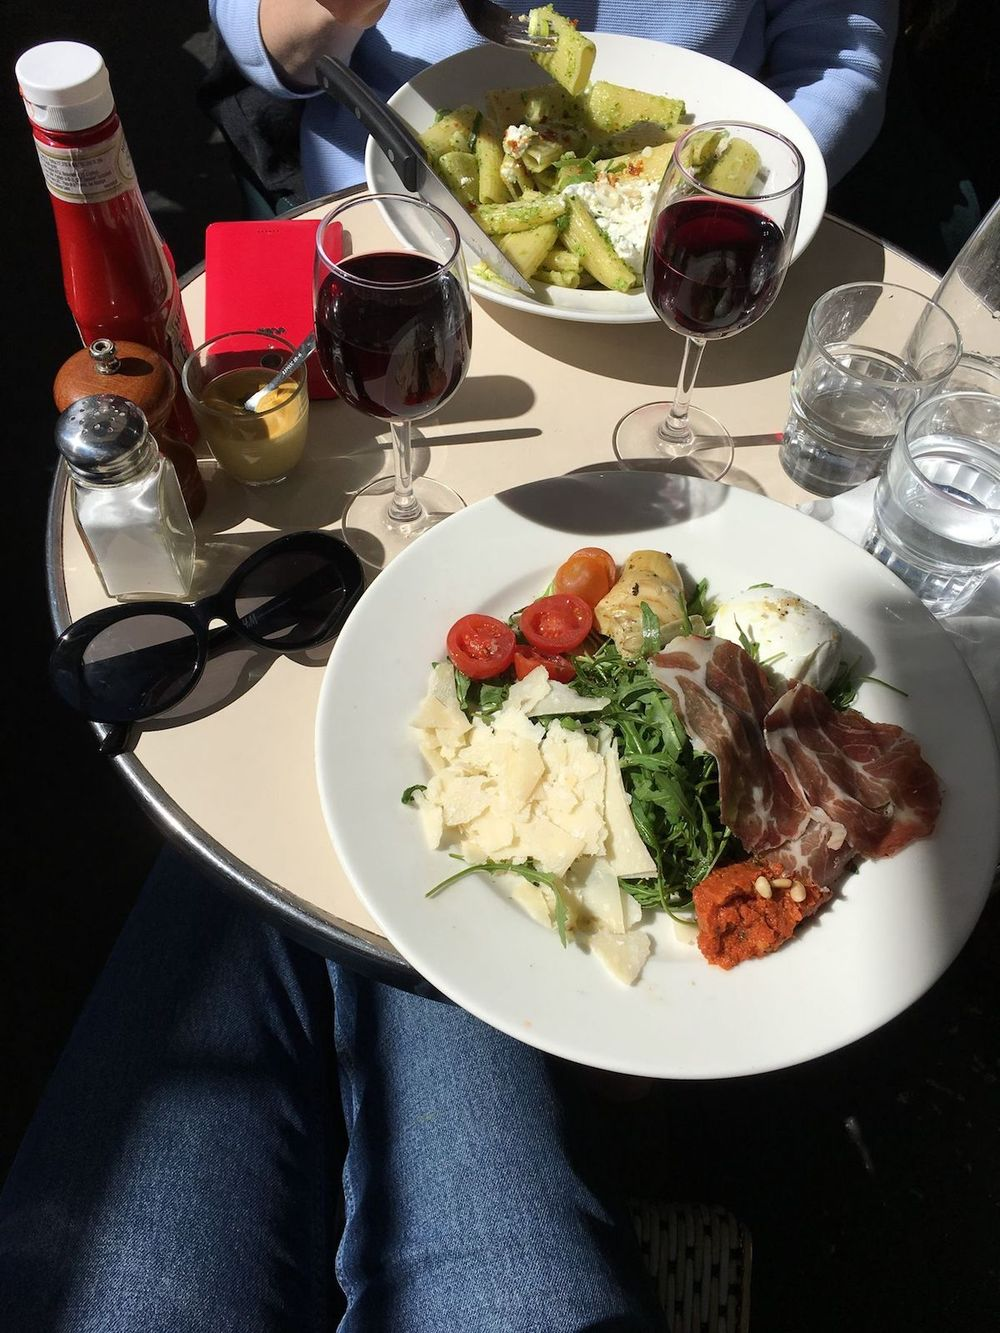 Where to eat during summer in Paris - Italian Plate at Pause Café, Paris